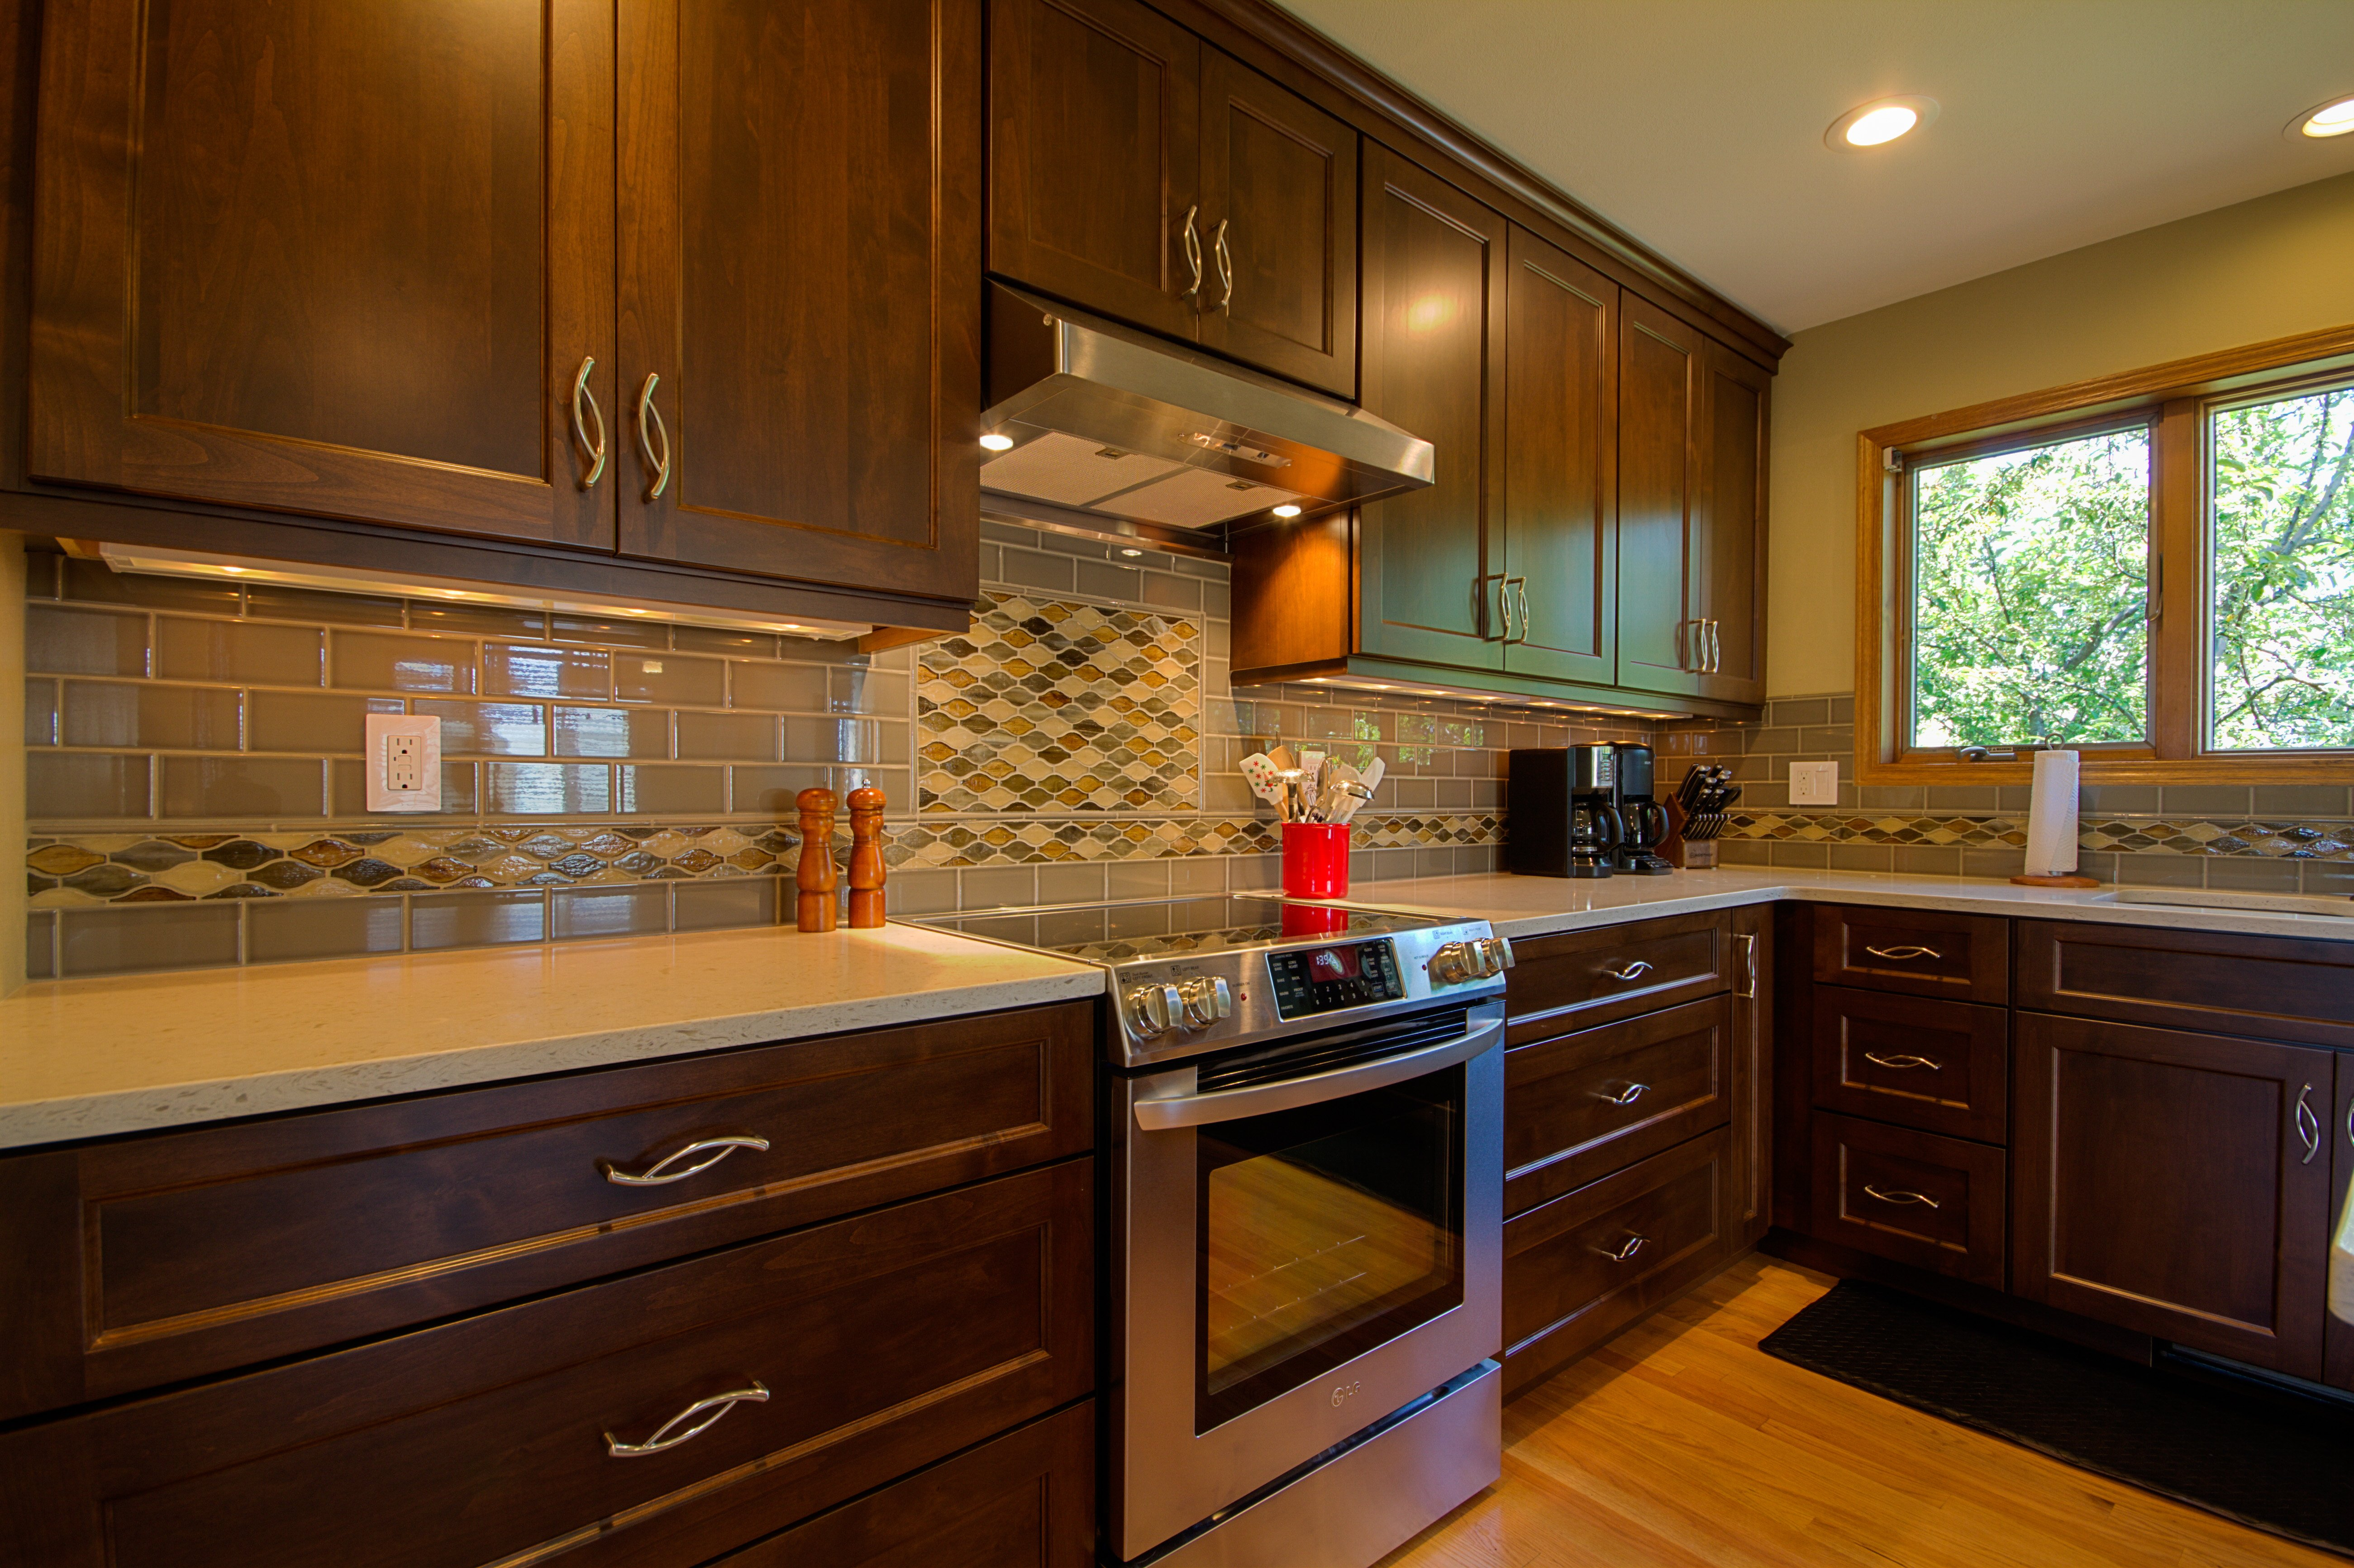 Kitchen Remodeling and Design, glass subway tile, dark brown cabinets